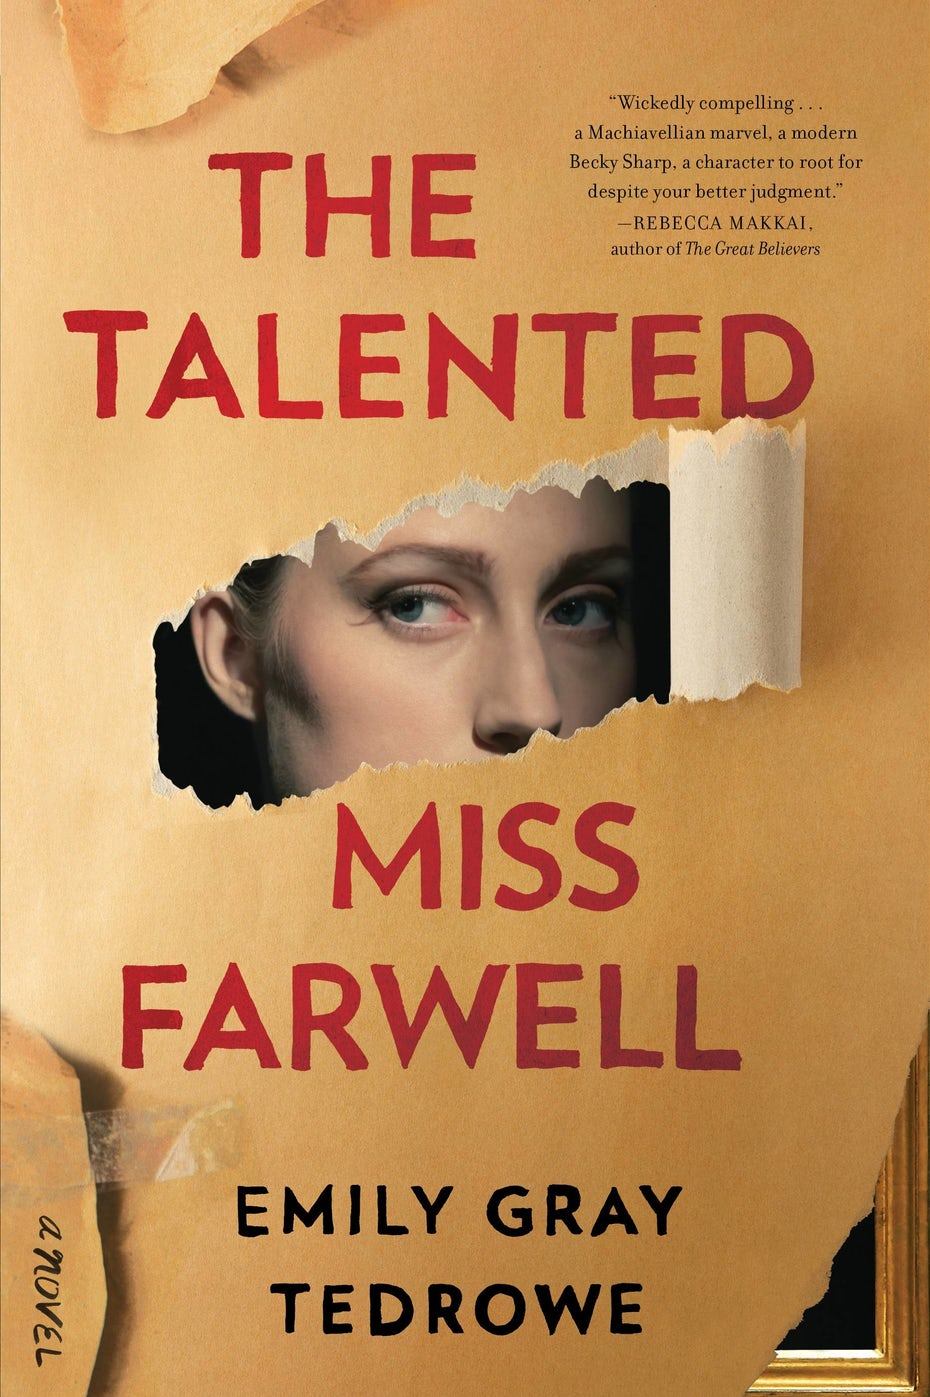 tan book cover with red text and a torn-away image revealing a woman's eyes